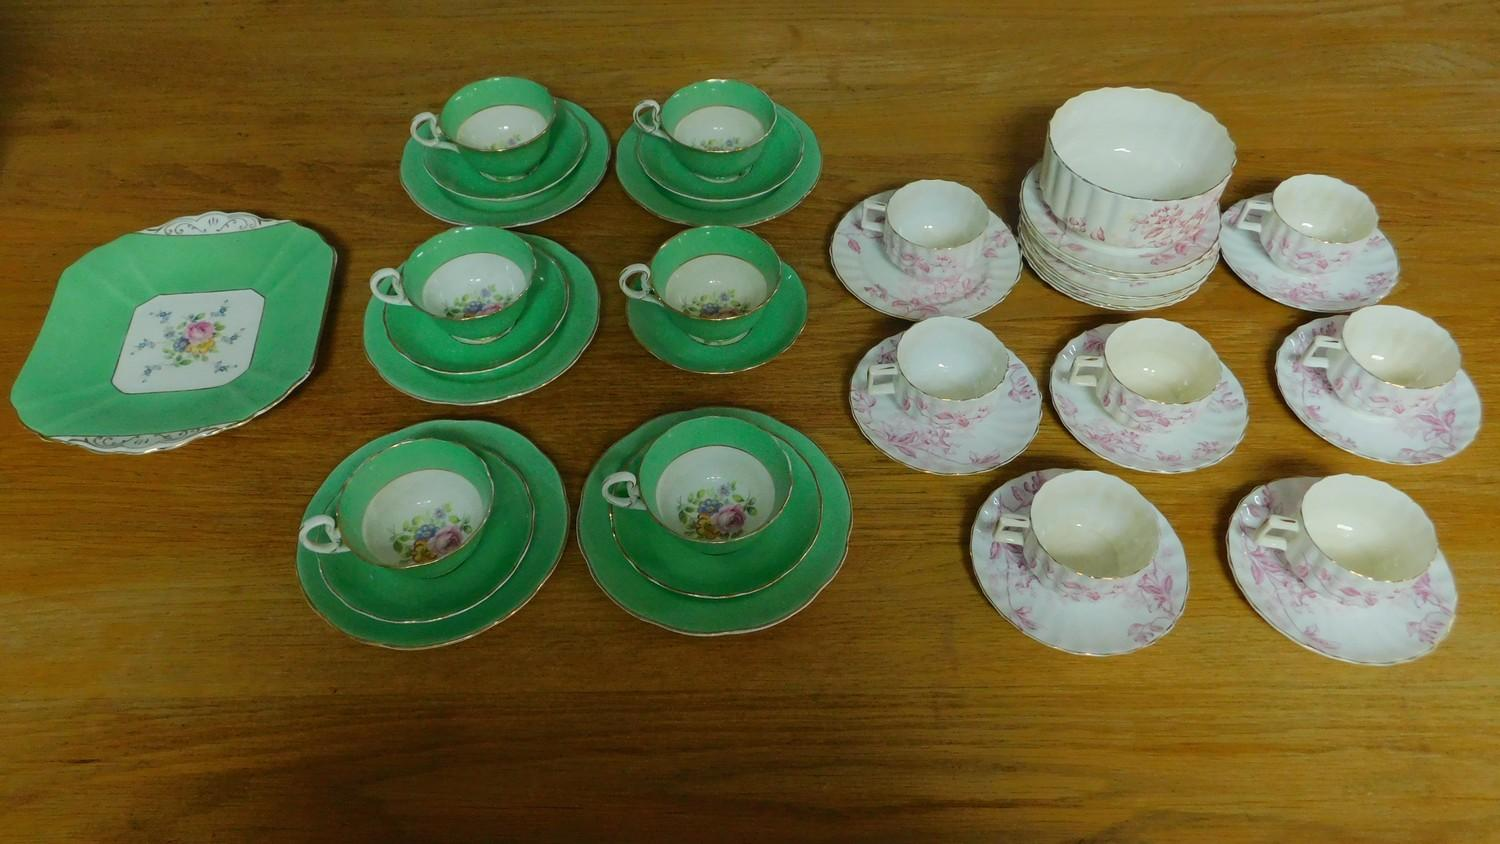 A green floral decorated tea set for six and a seven piece pink floral tea set.